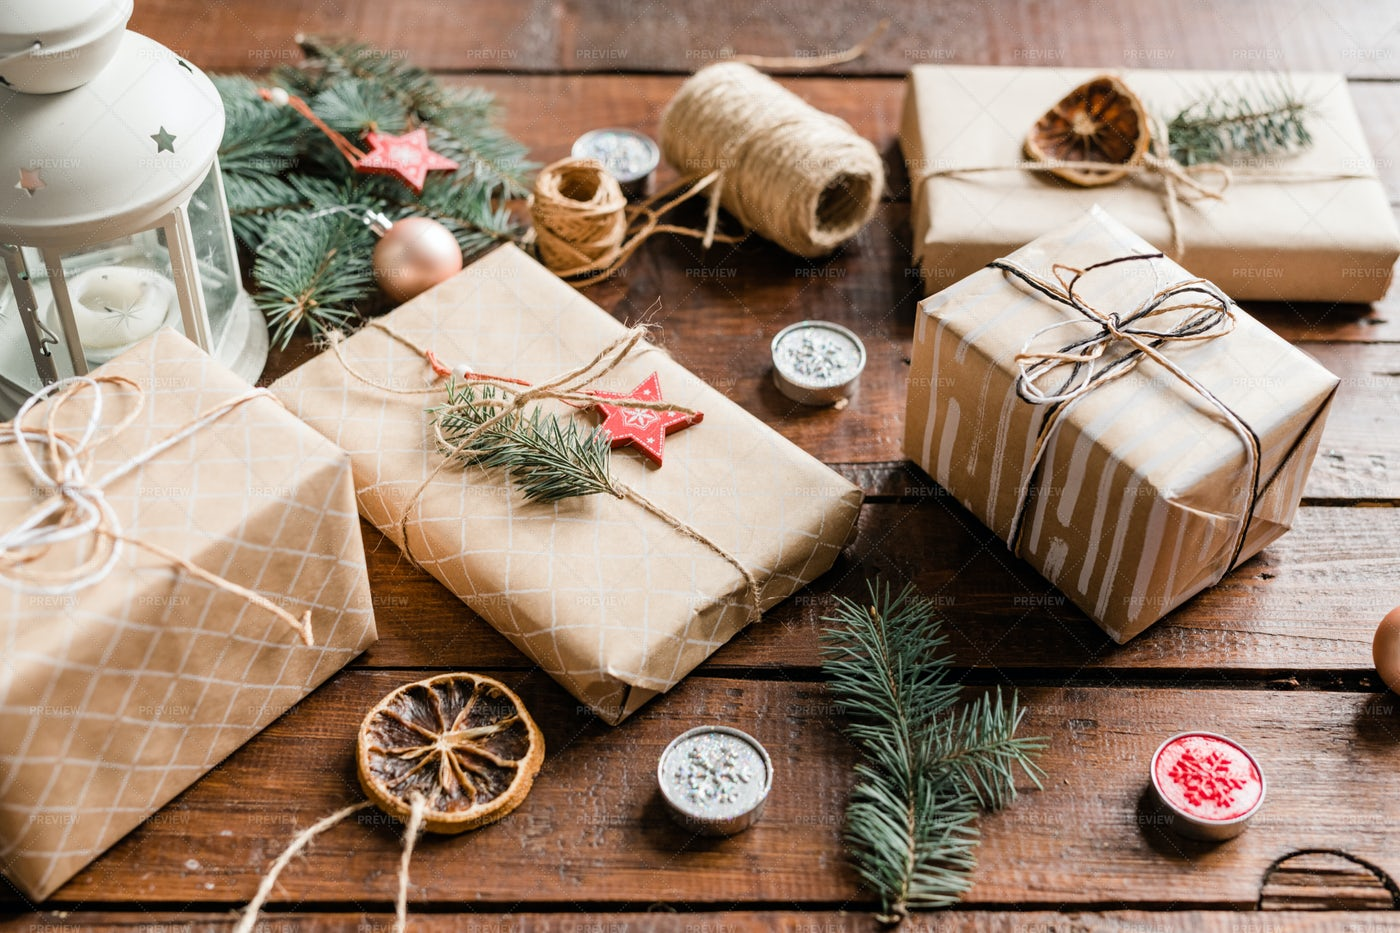 Wrapped Giftboxes Surrounded By...: Stock Photos